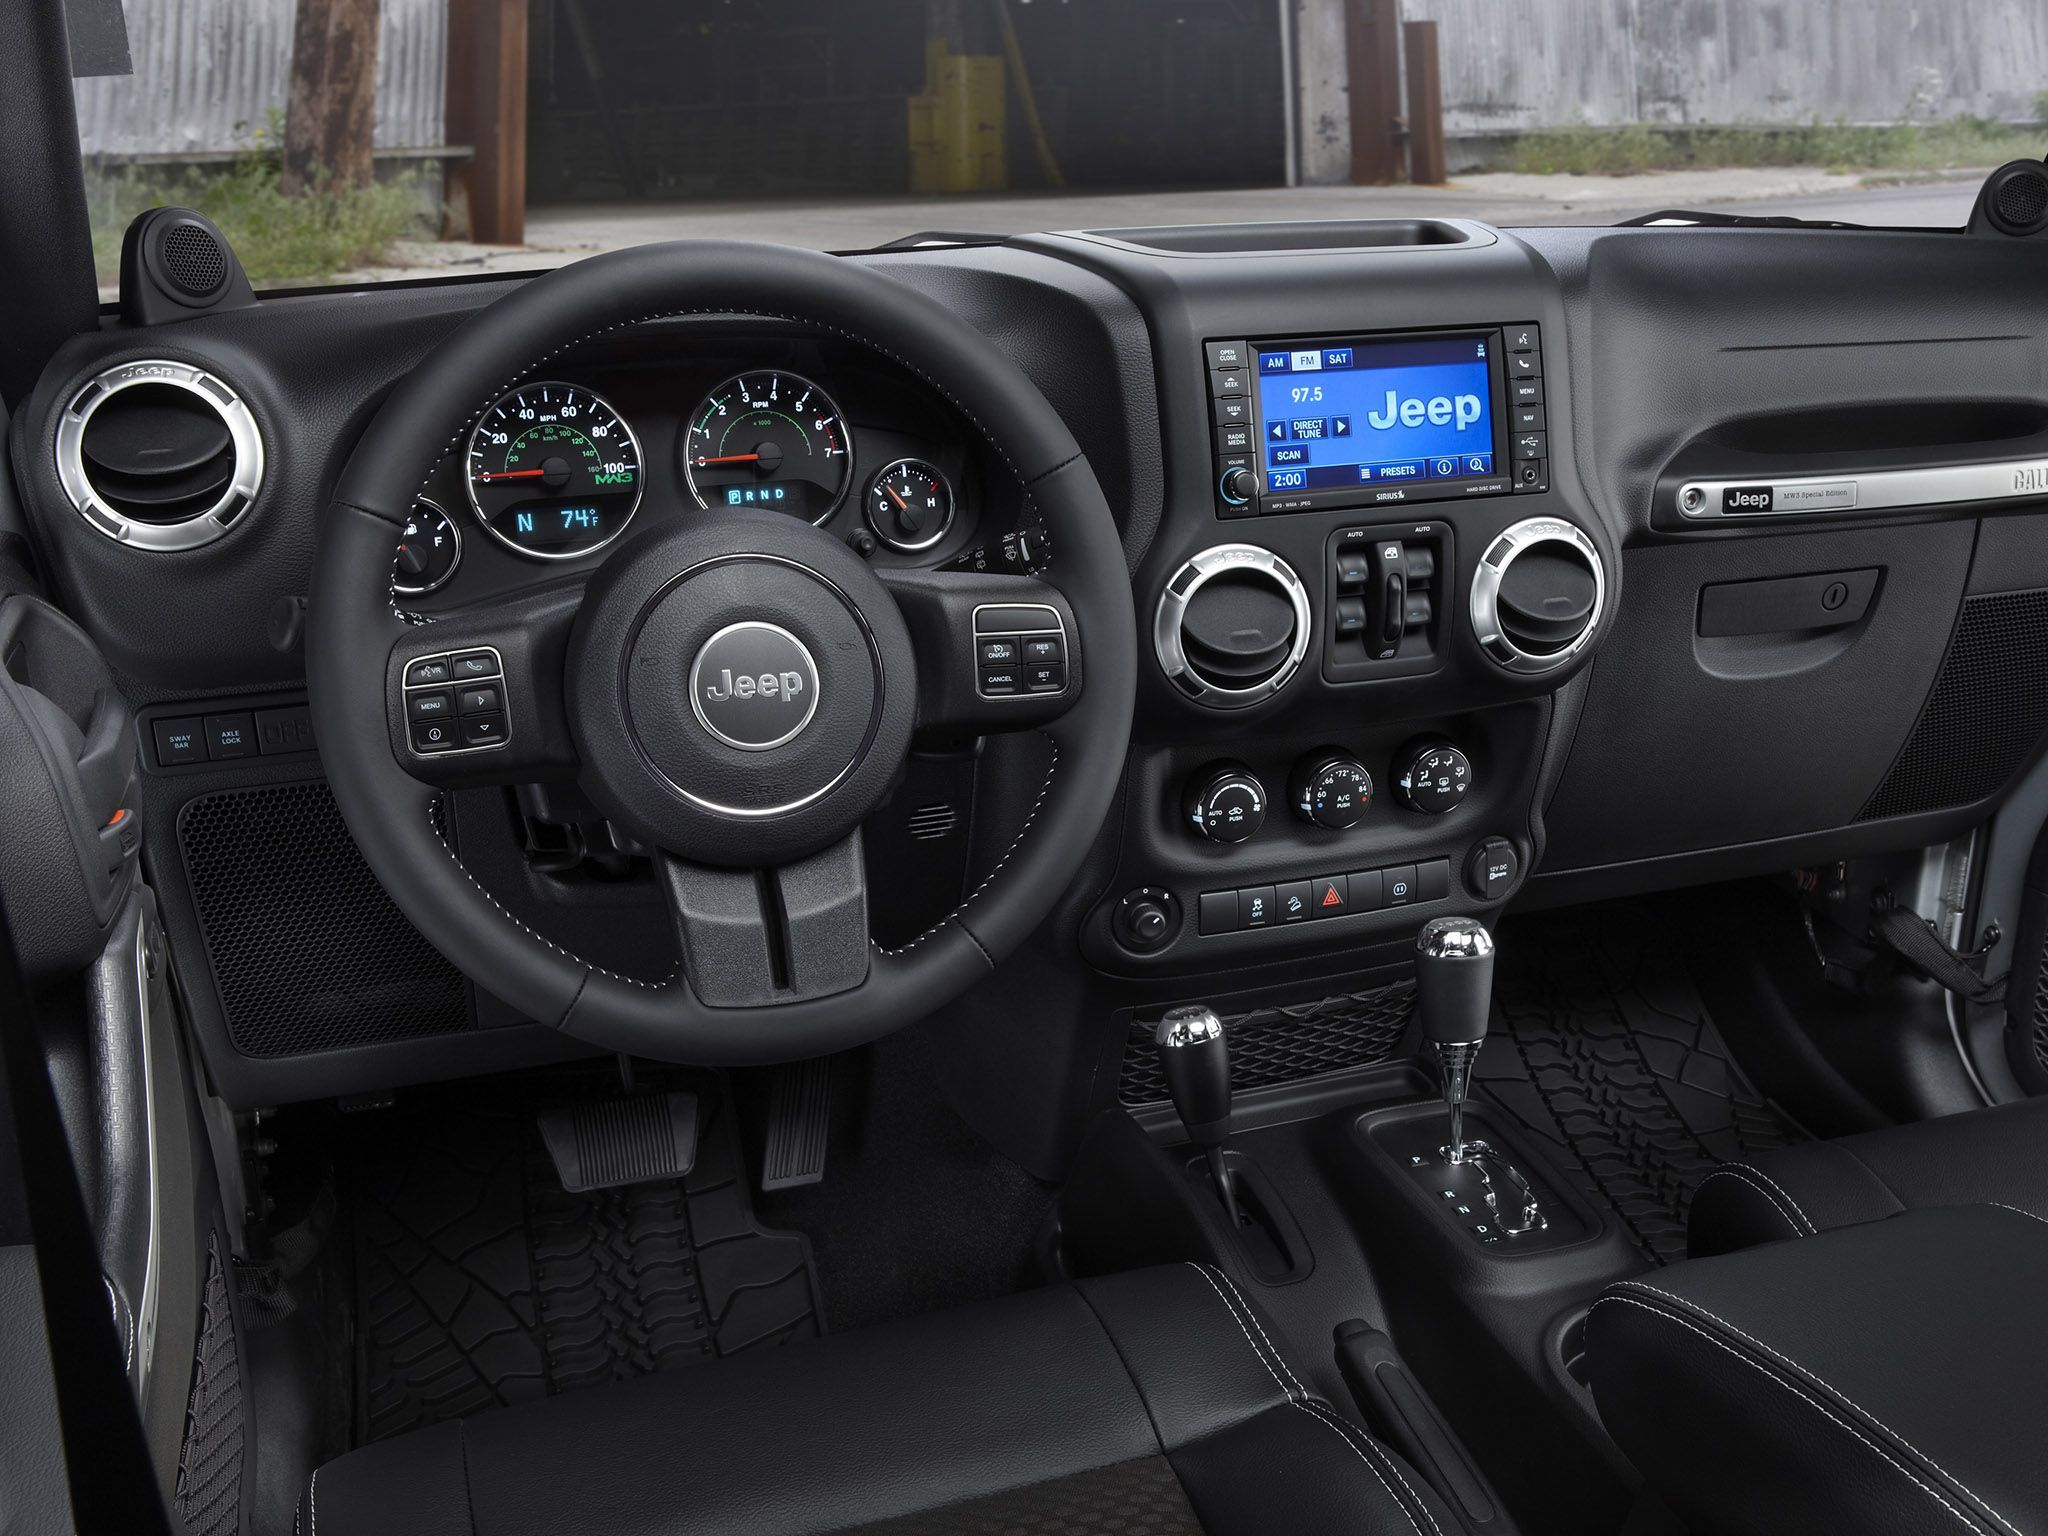 Interior Design Jeep Wrangler 2020 Interior